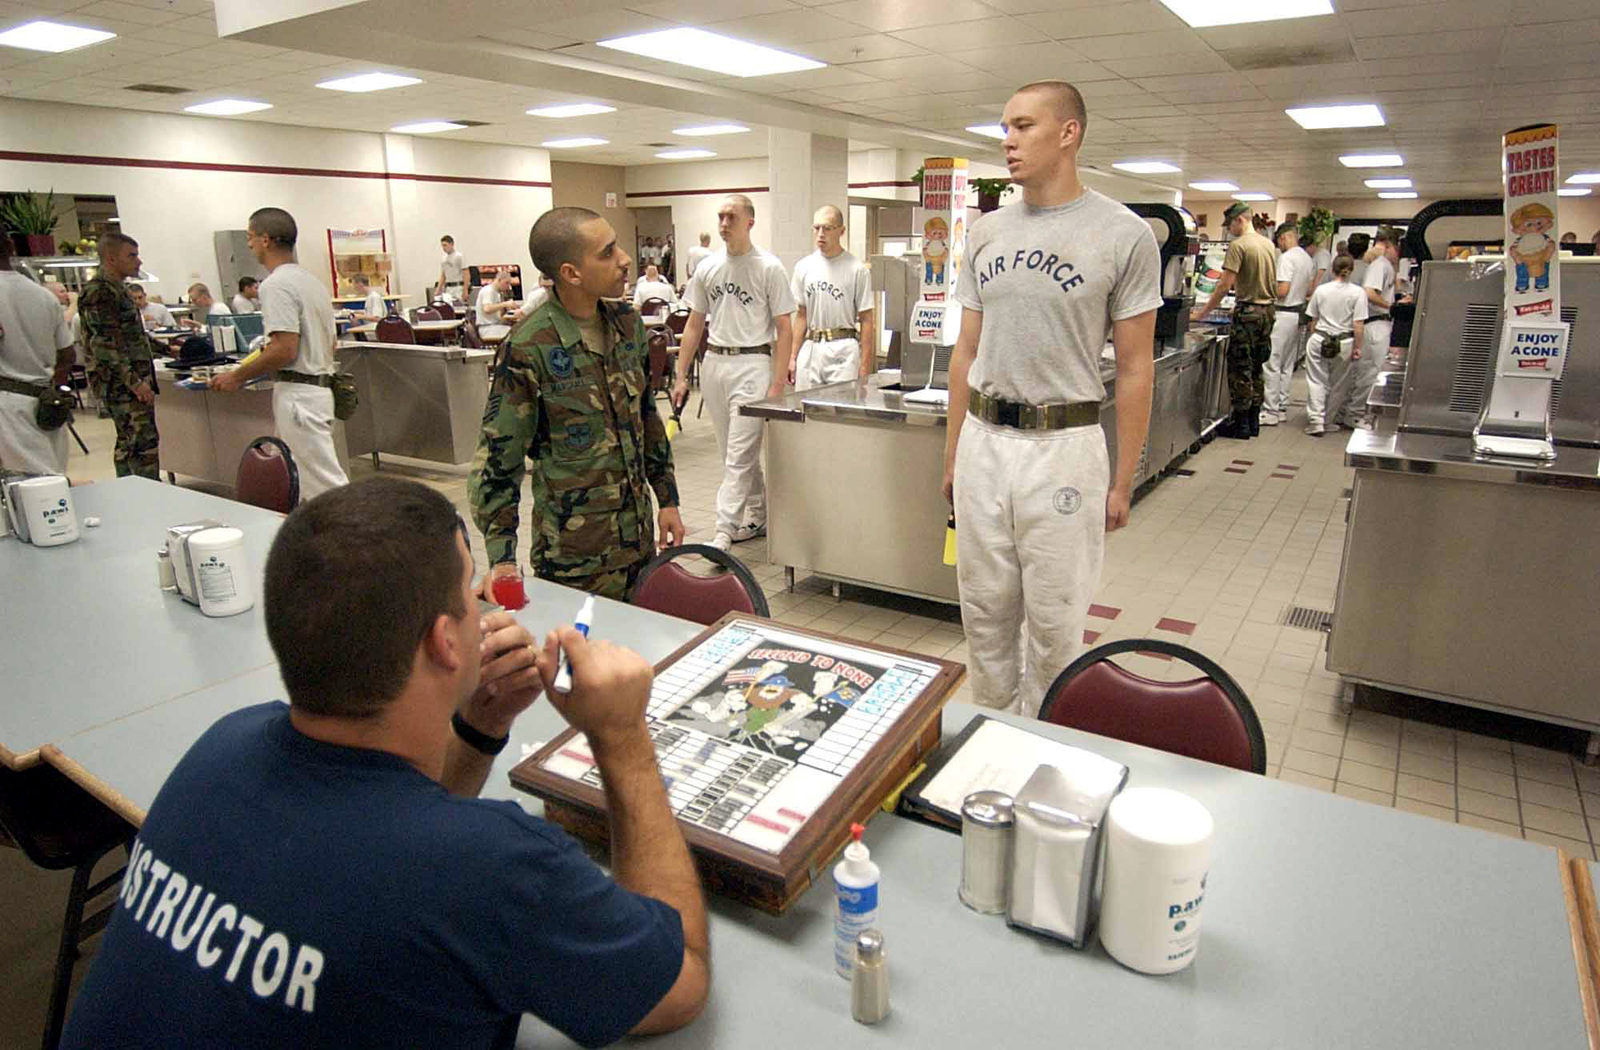 The Basic Military Training (BMT) instructors table, or